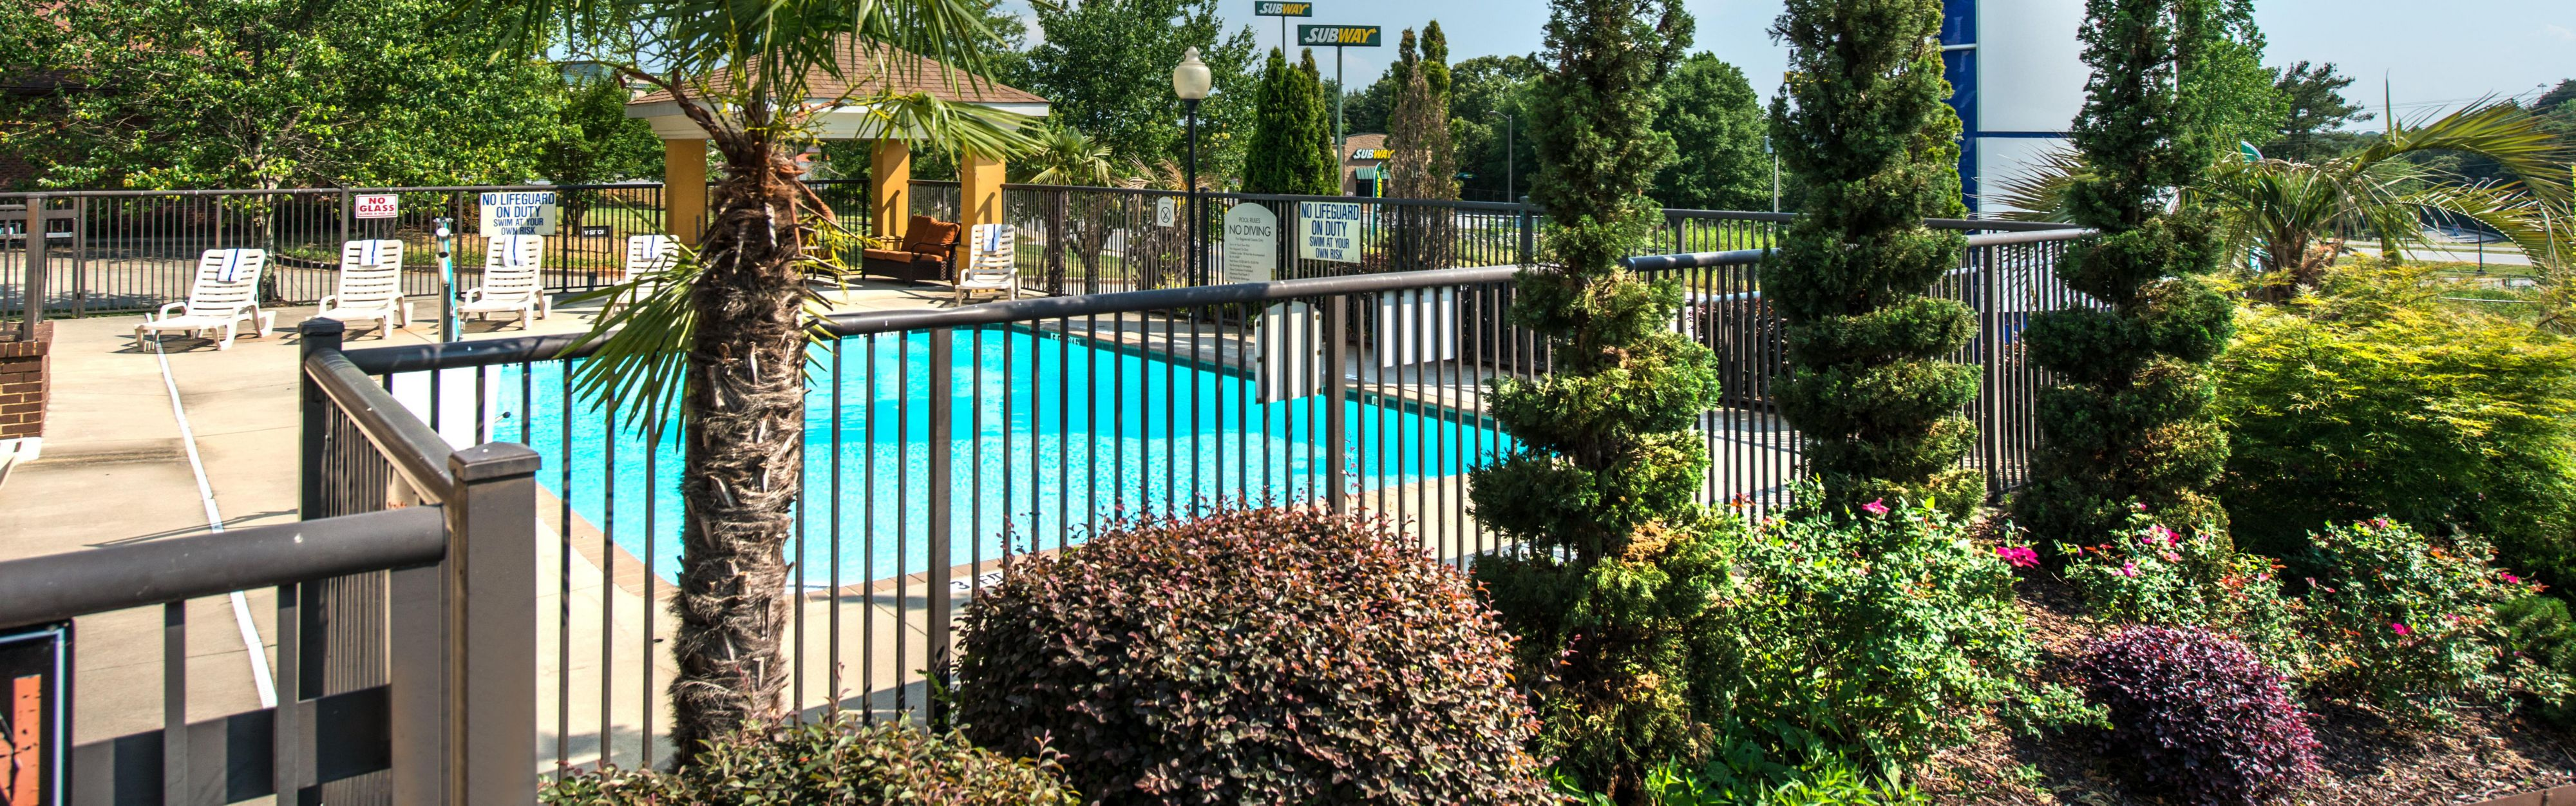 Holiday Inn Express & Suites Anderson-I-85 (Hwy 76, Ex 19b) image 1